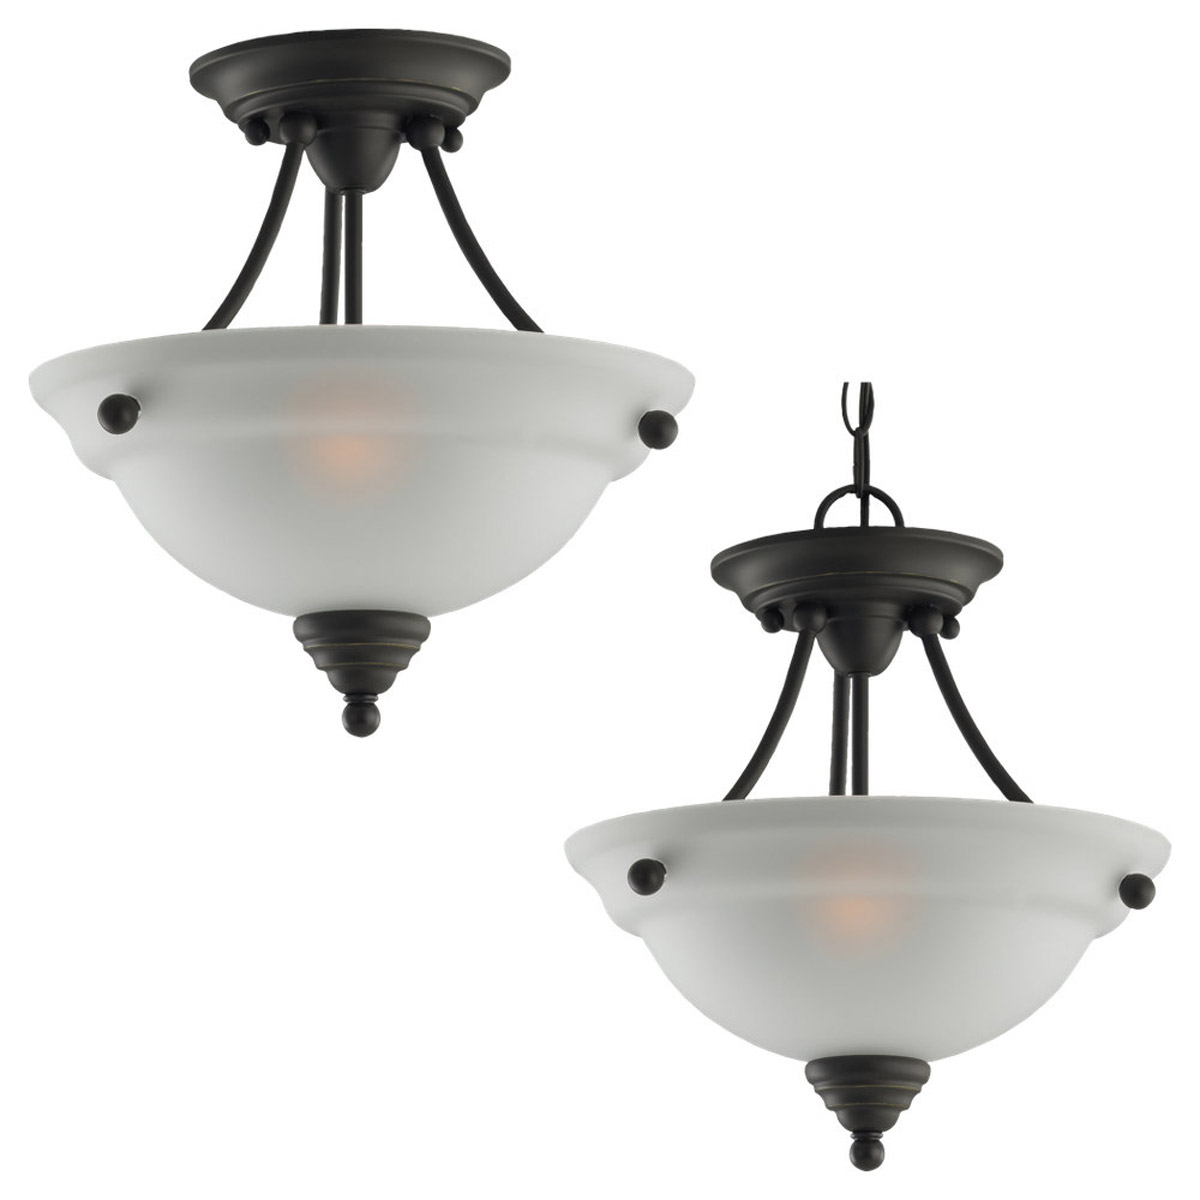 Sea Gull Lighting Albany 2 Light Semi-Flush Mount in Heirloom Bronze 77575-782